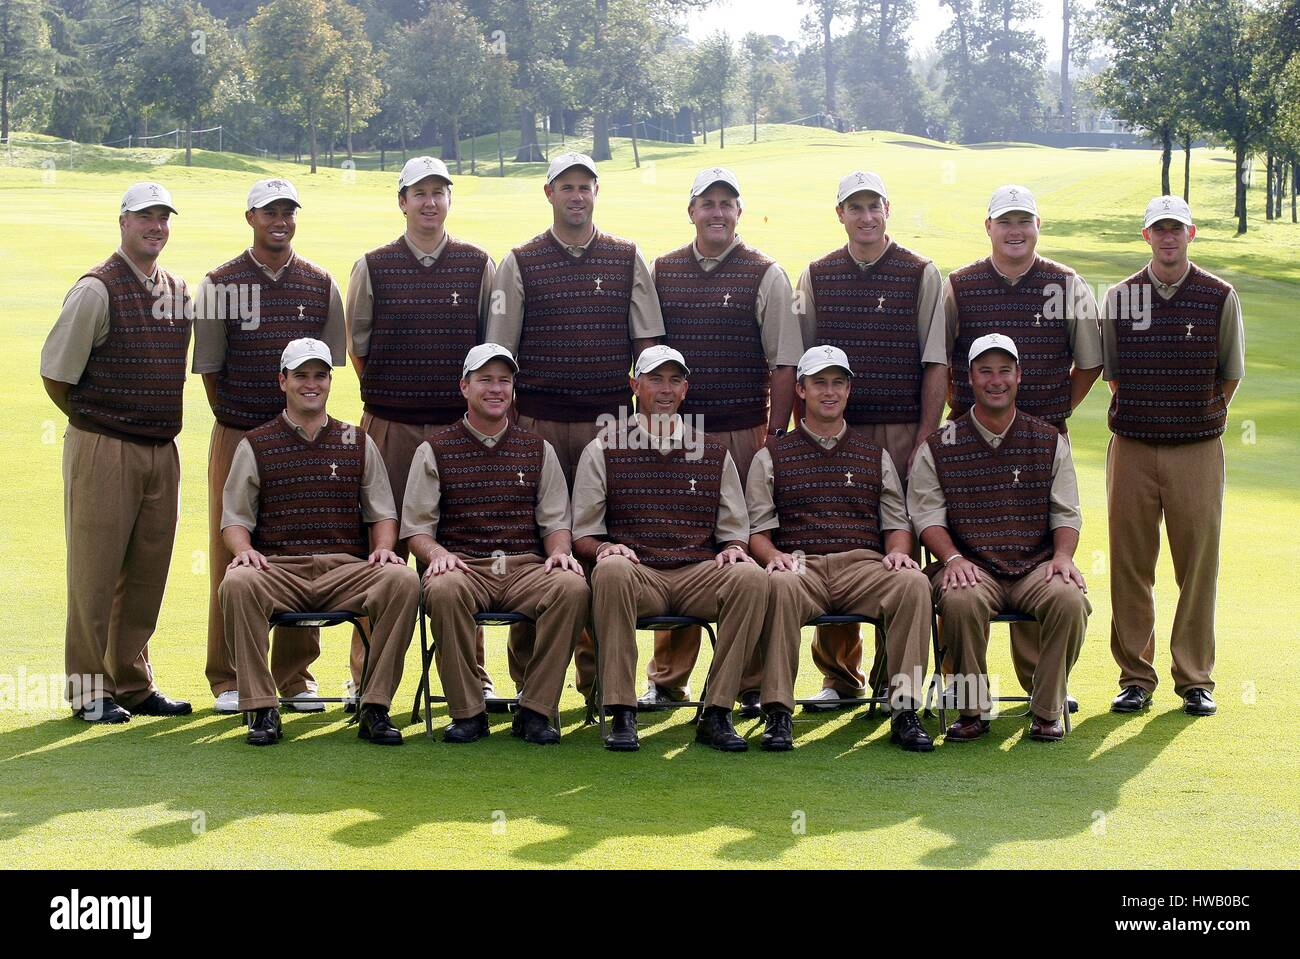 Image result for us ryder cup team photos